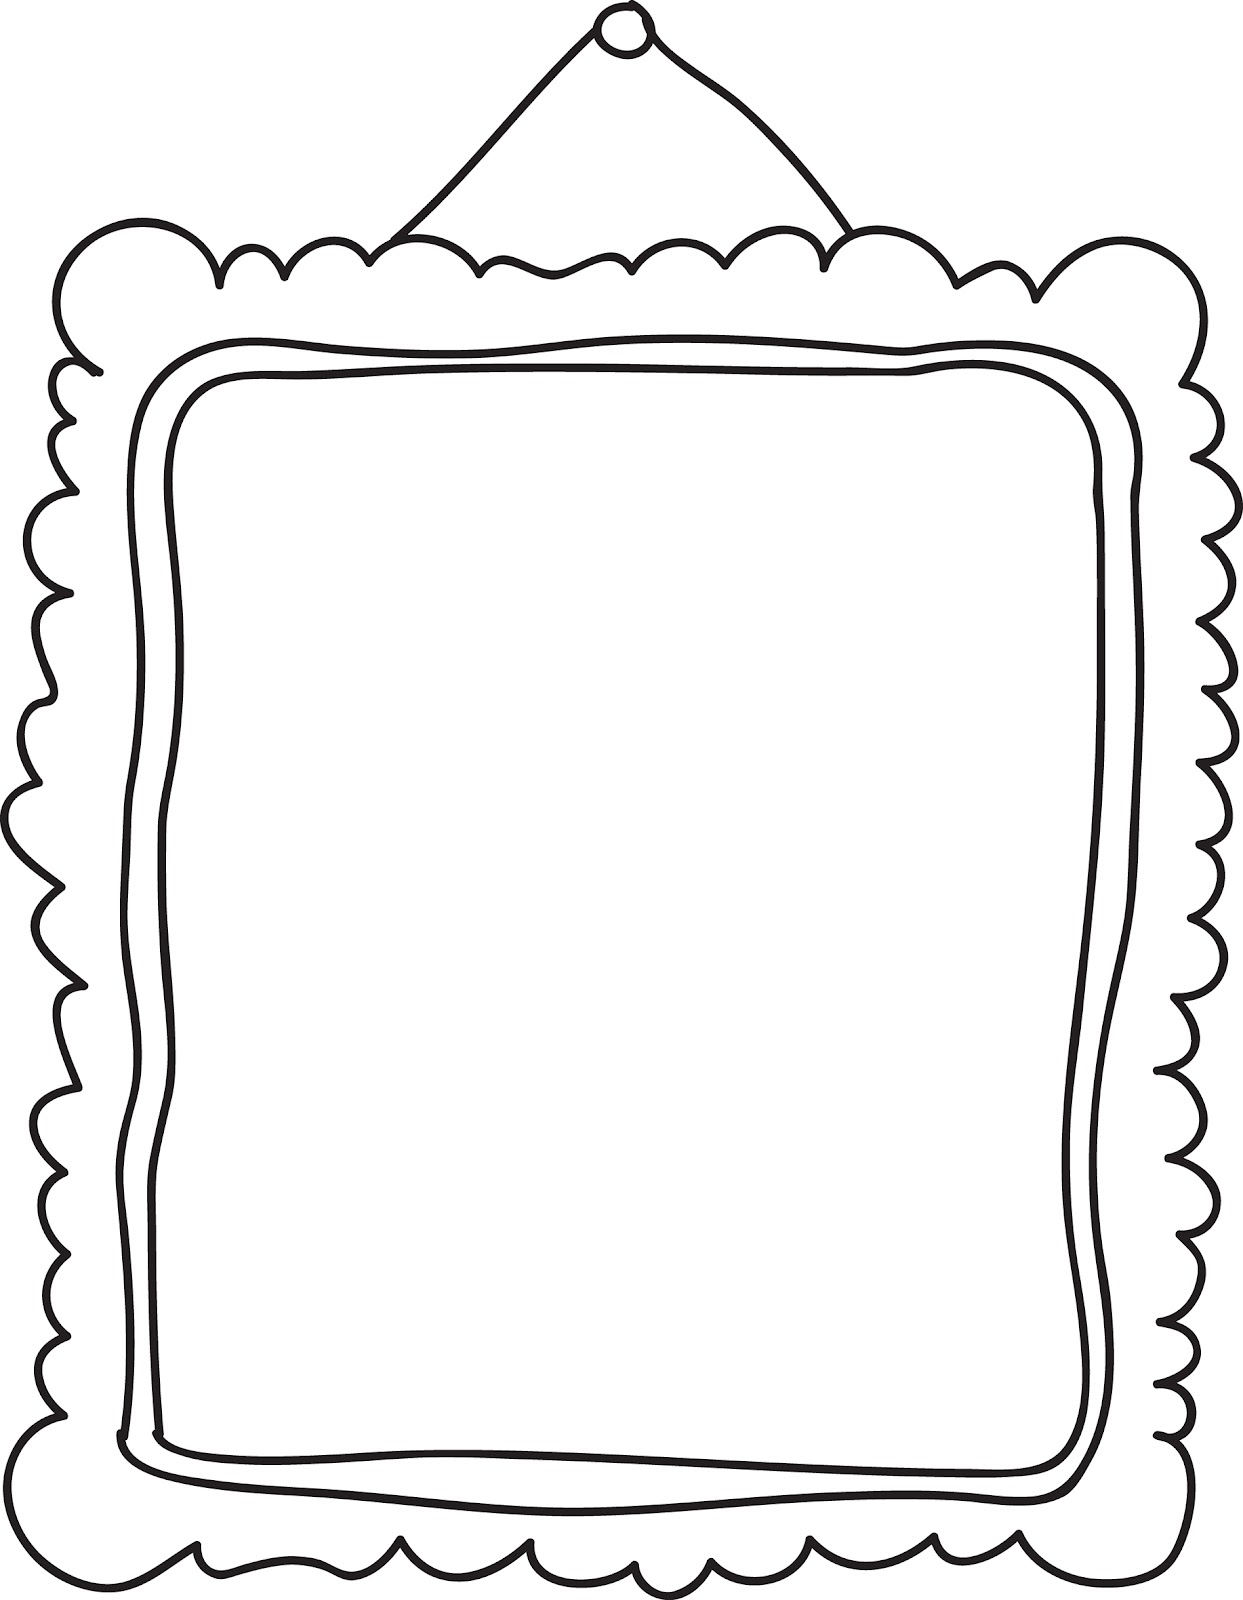 Free Frames Clipart-Free Frames Clipart-13